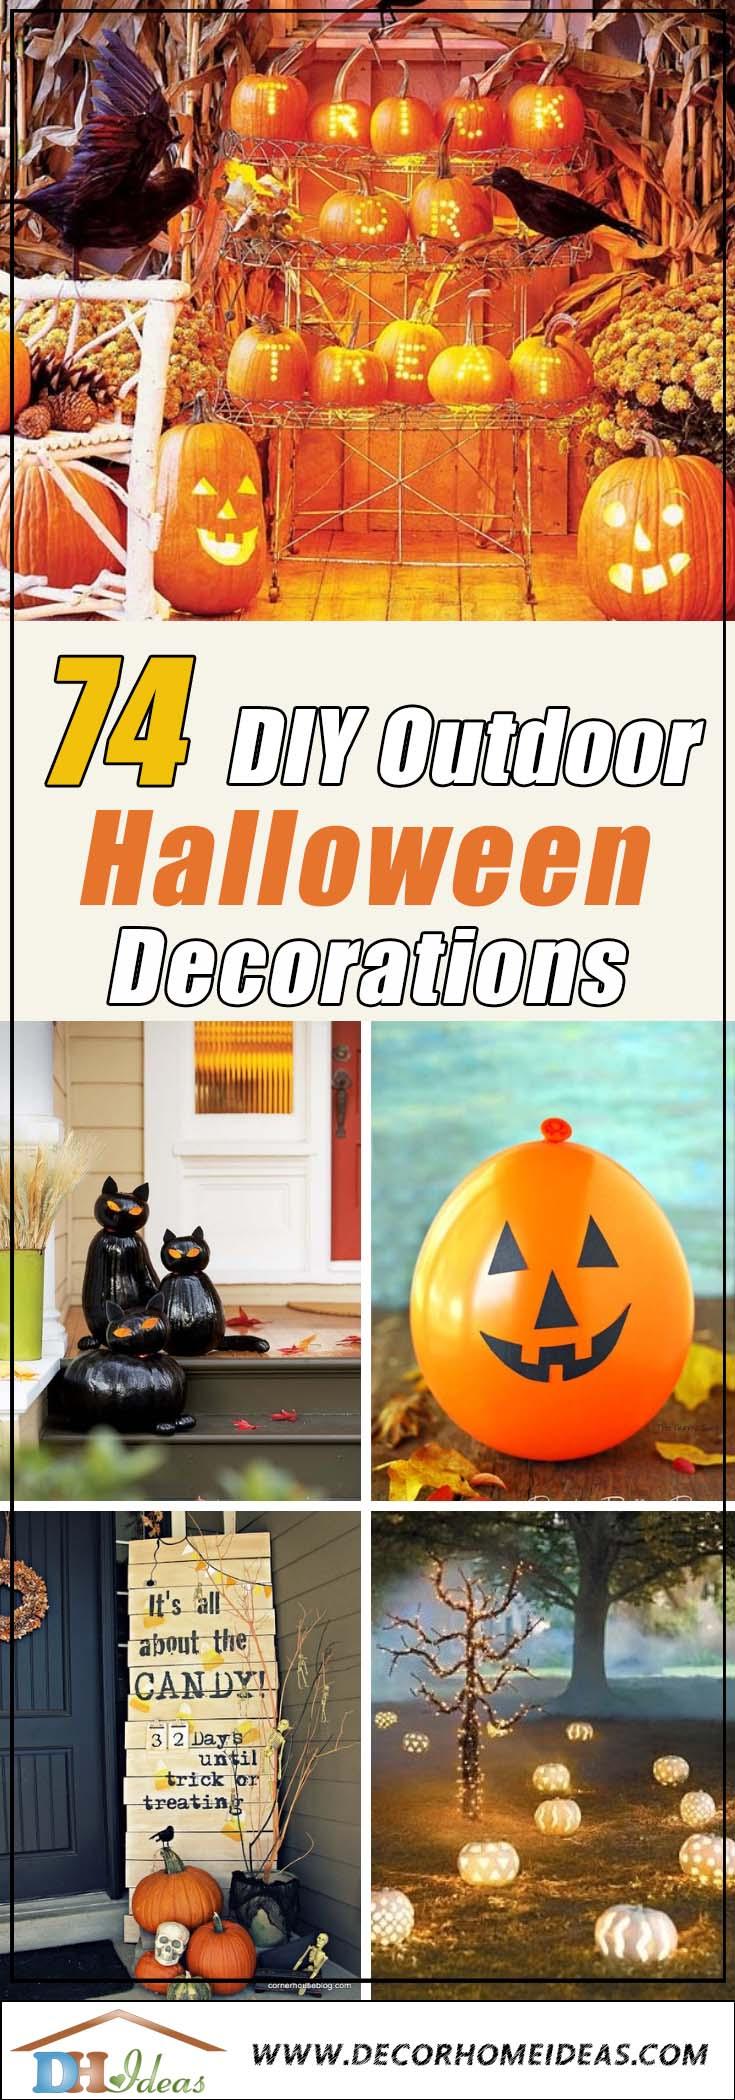 74 Best Diy Outdoor Halloween Decorations Complete List For 2020 Decor Home Ideas